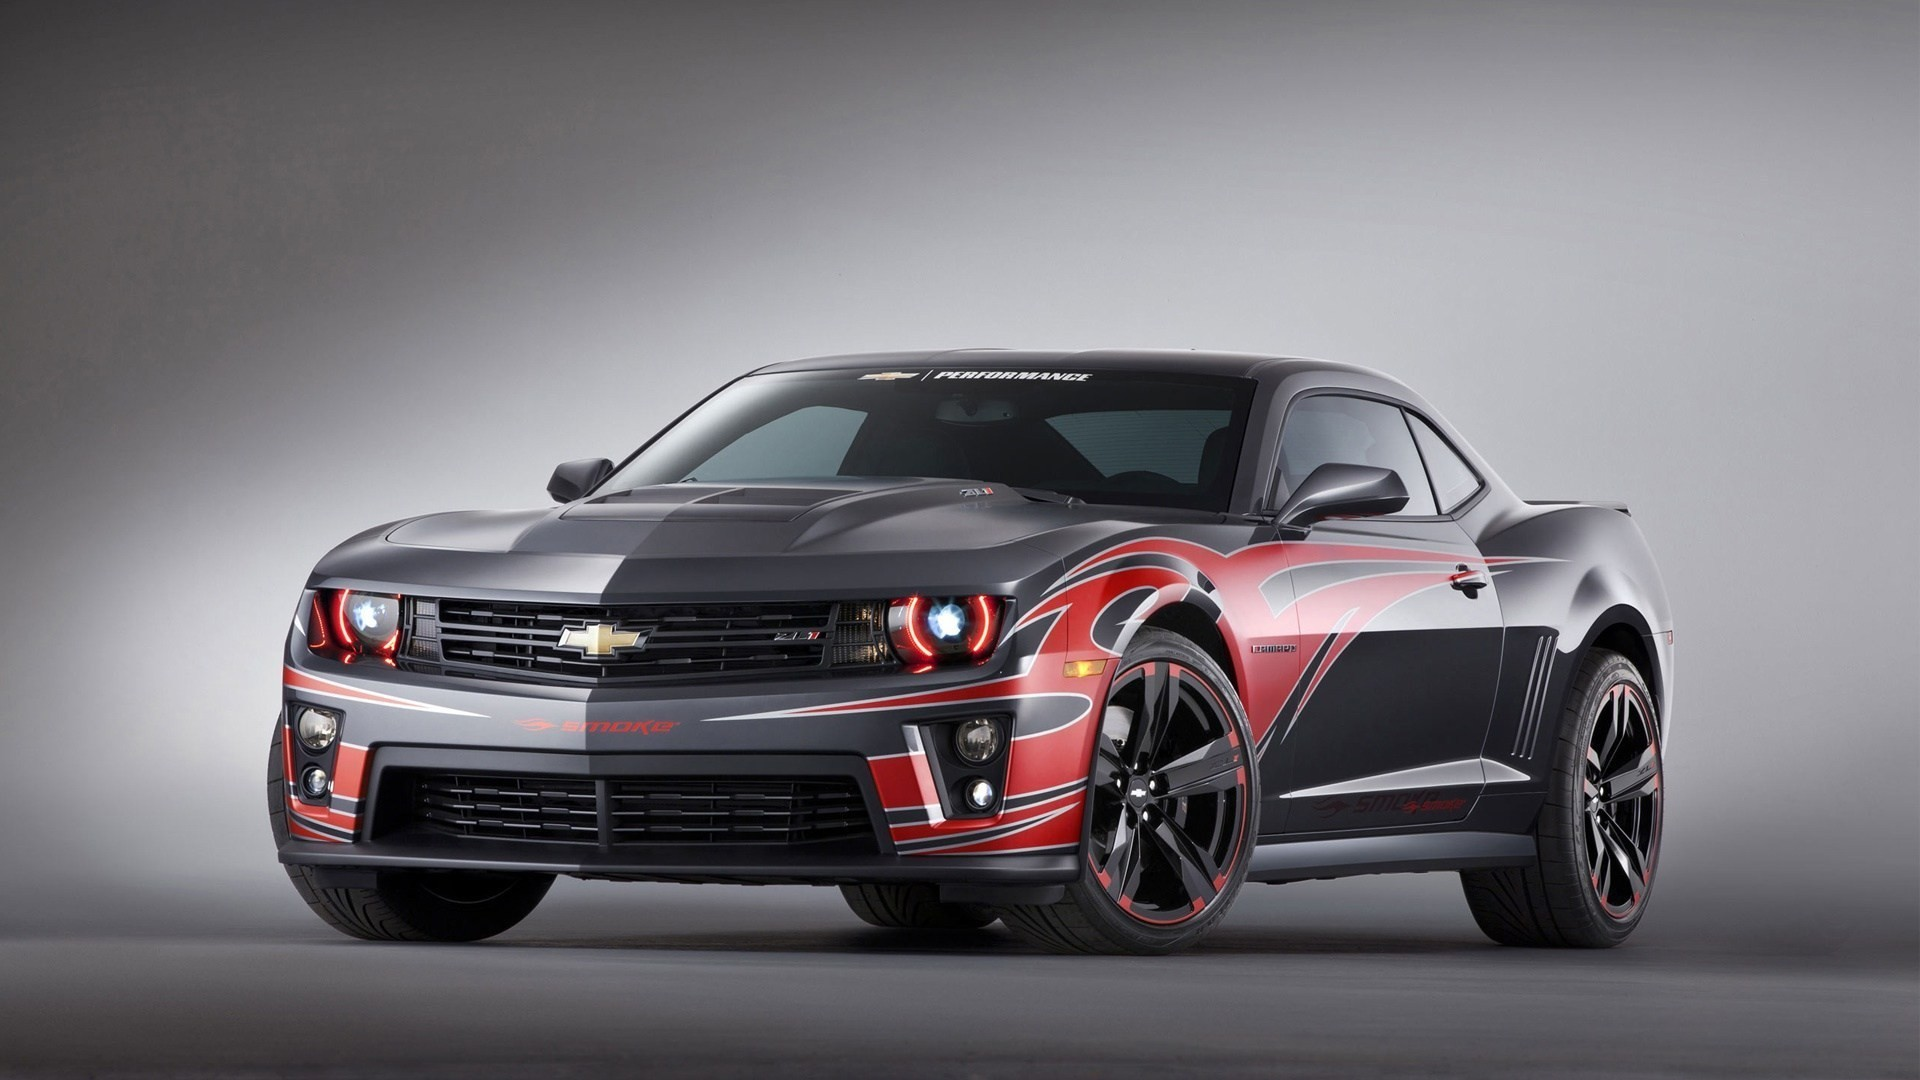 1920x1080 chevrolet camaro wallpaper wallpapersafari black